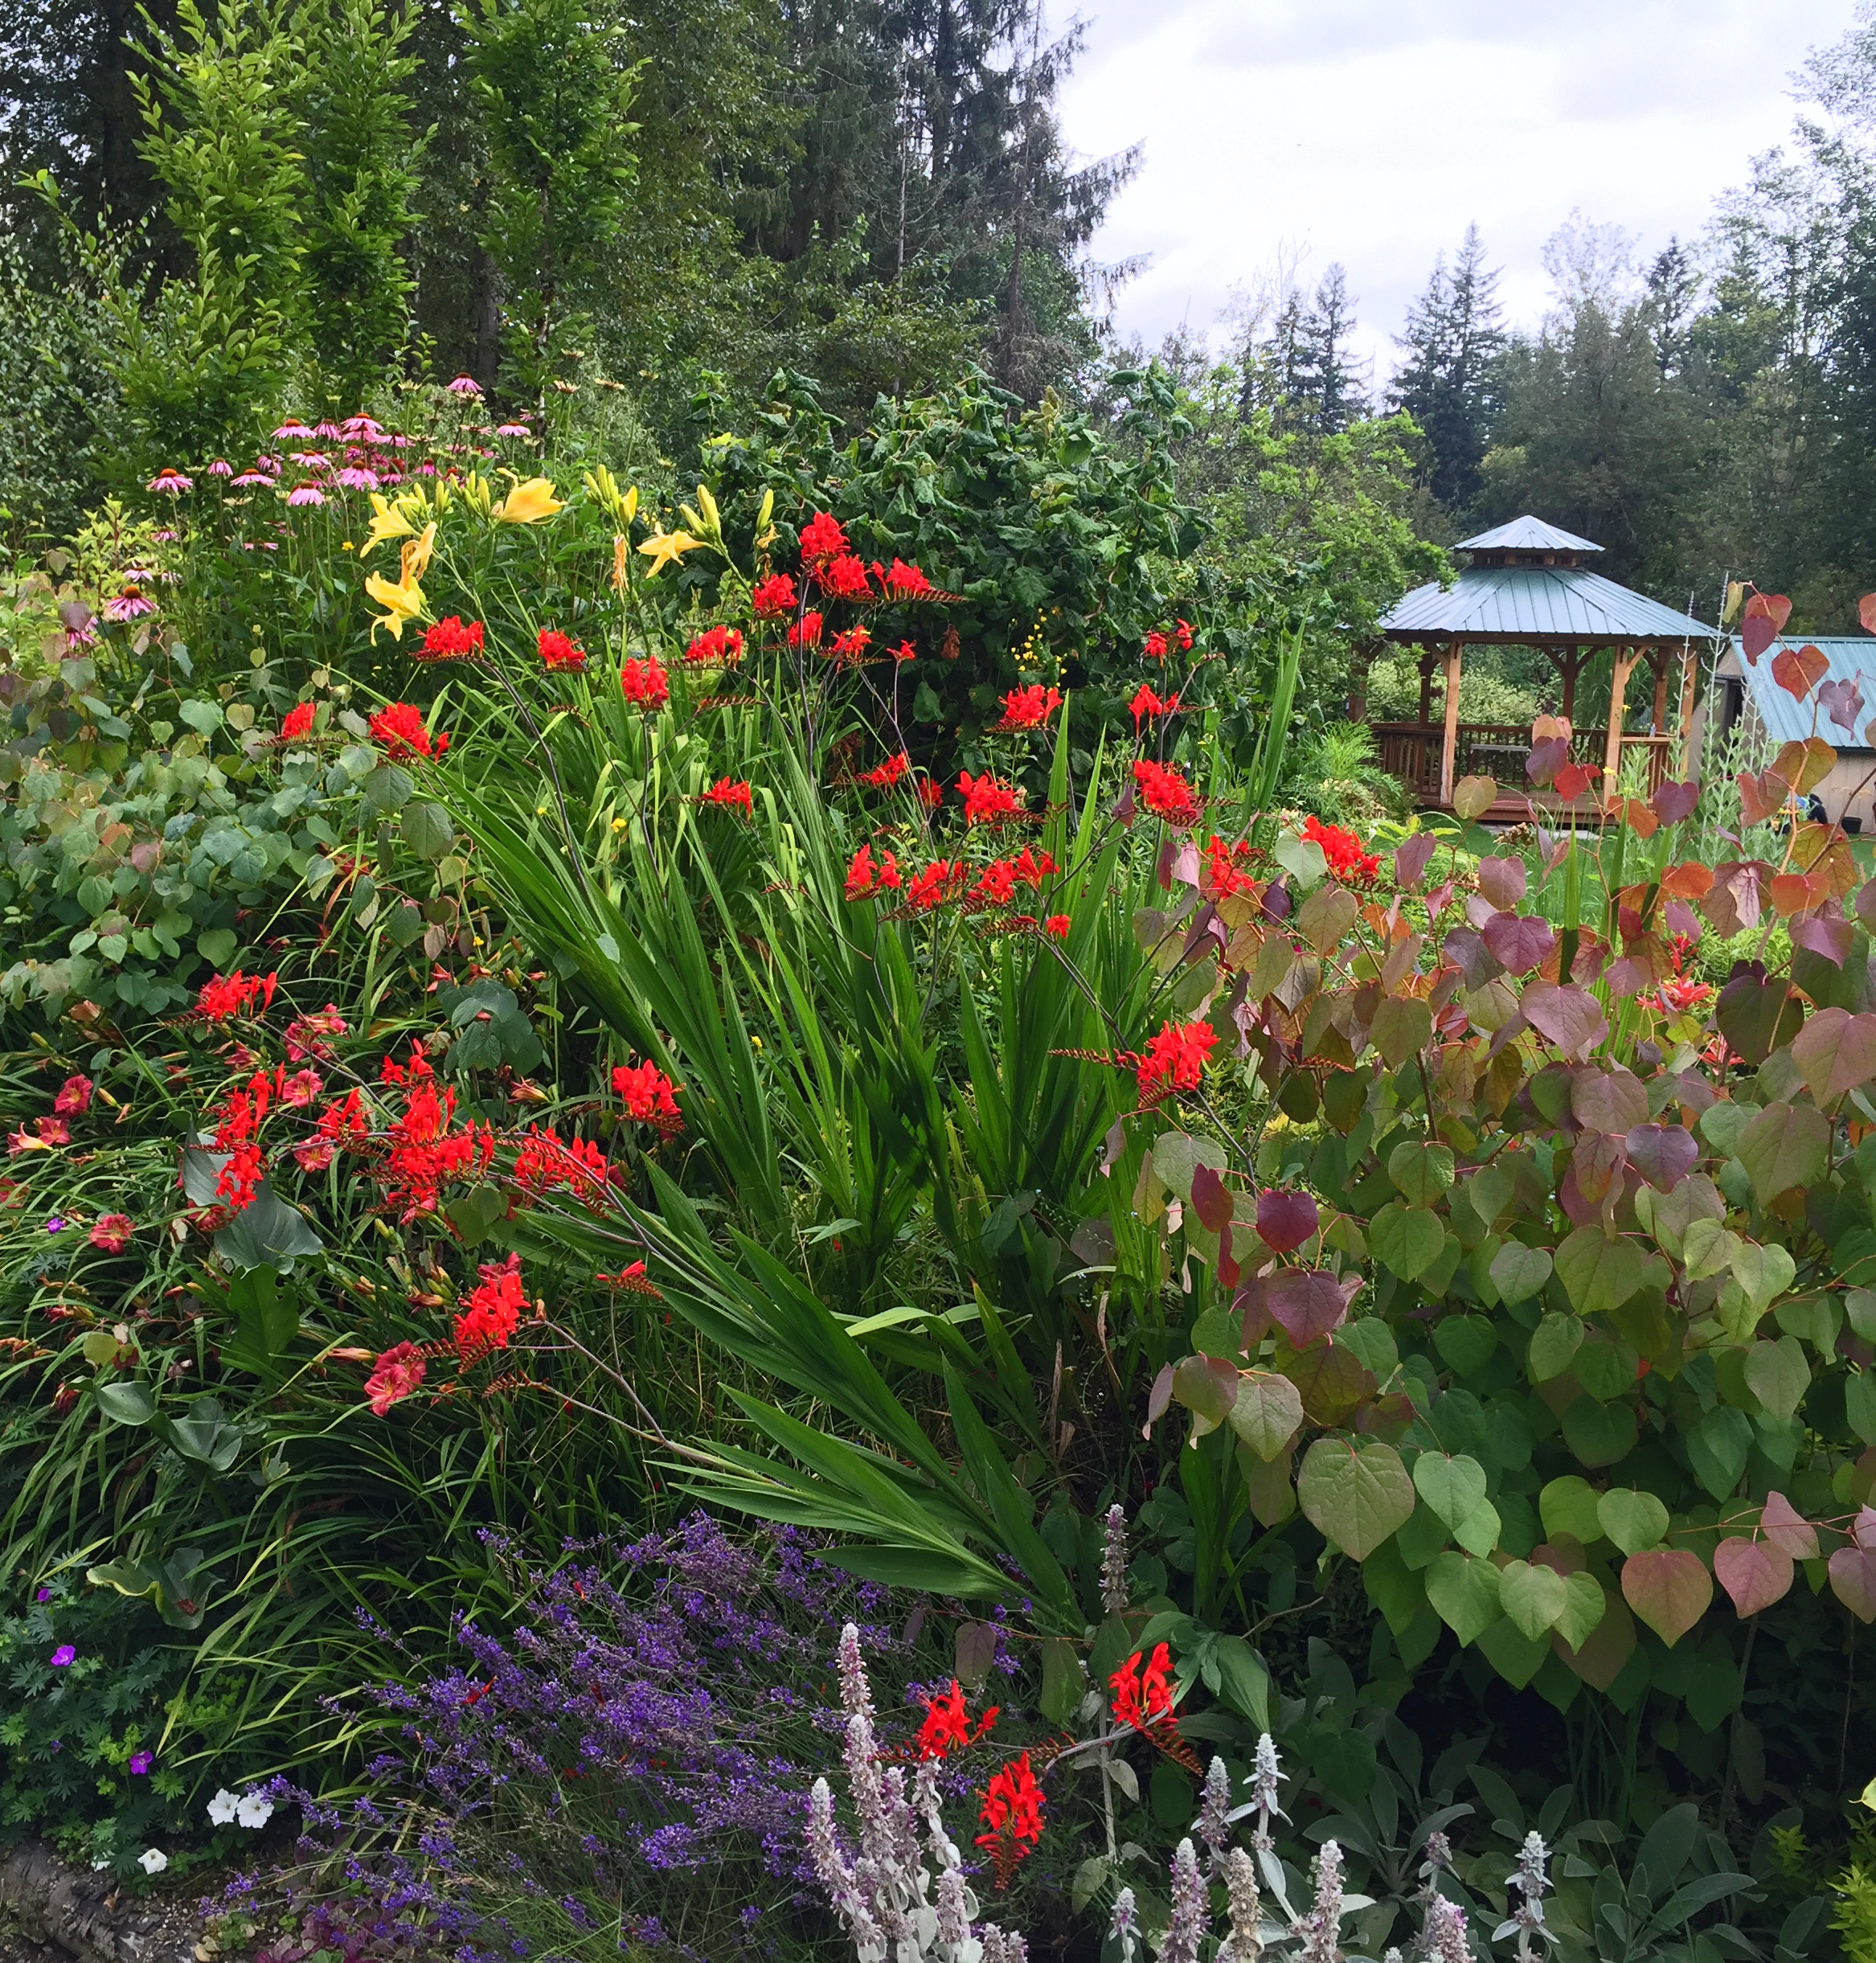 Gorgeous mid-July gardens